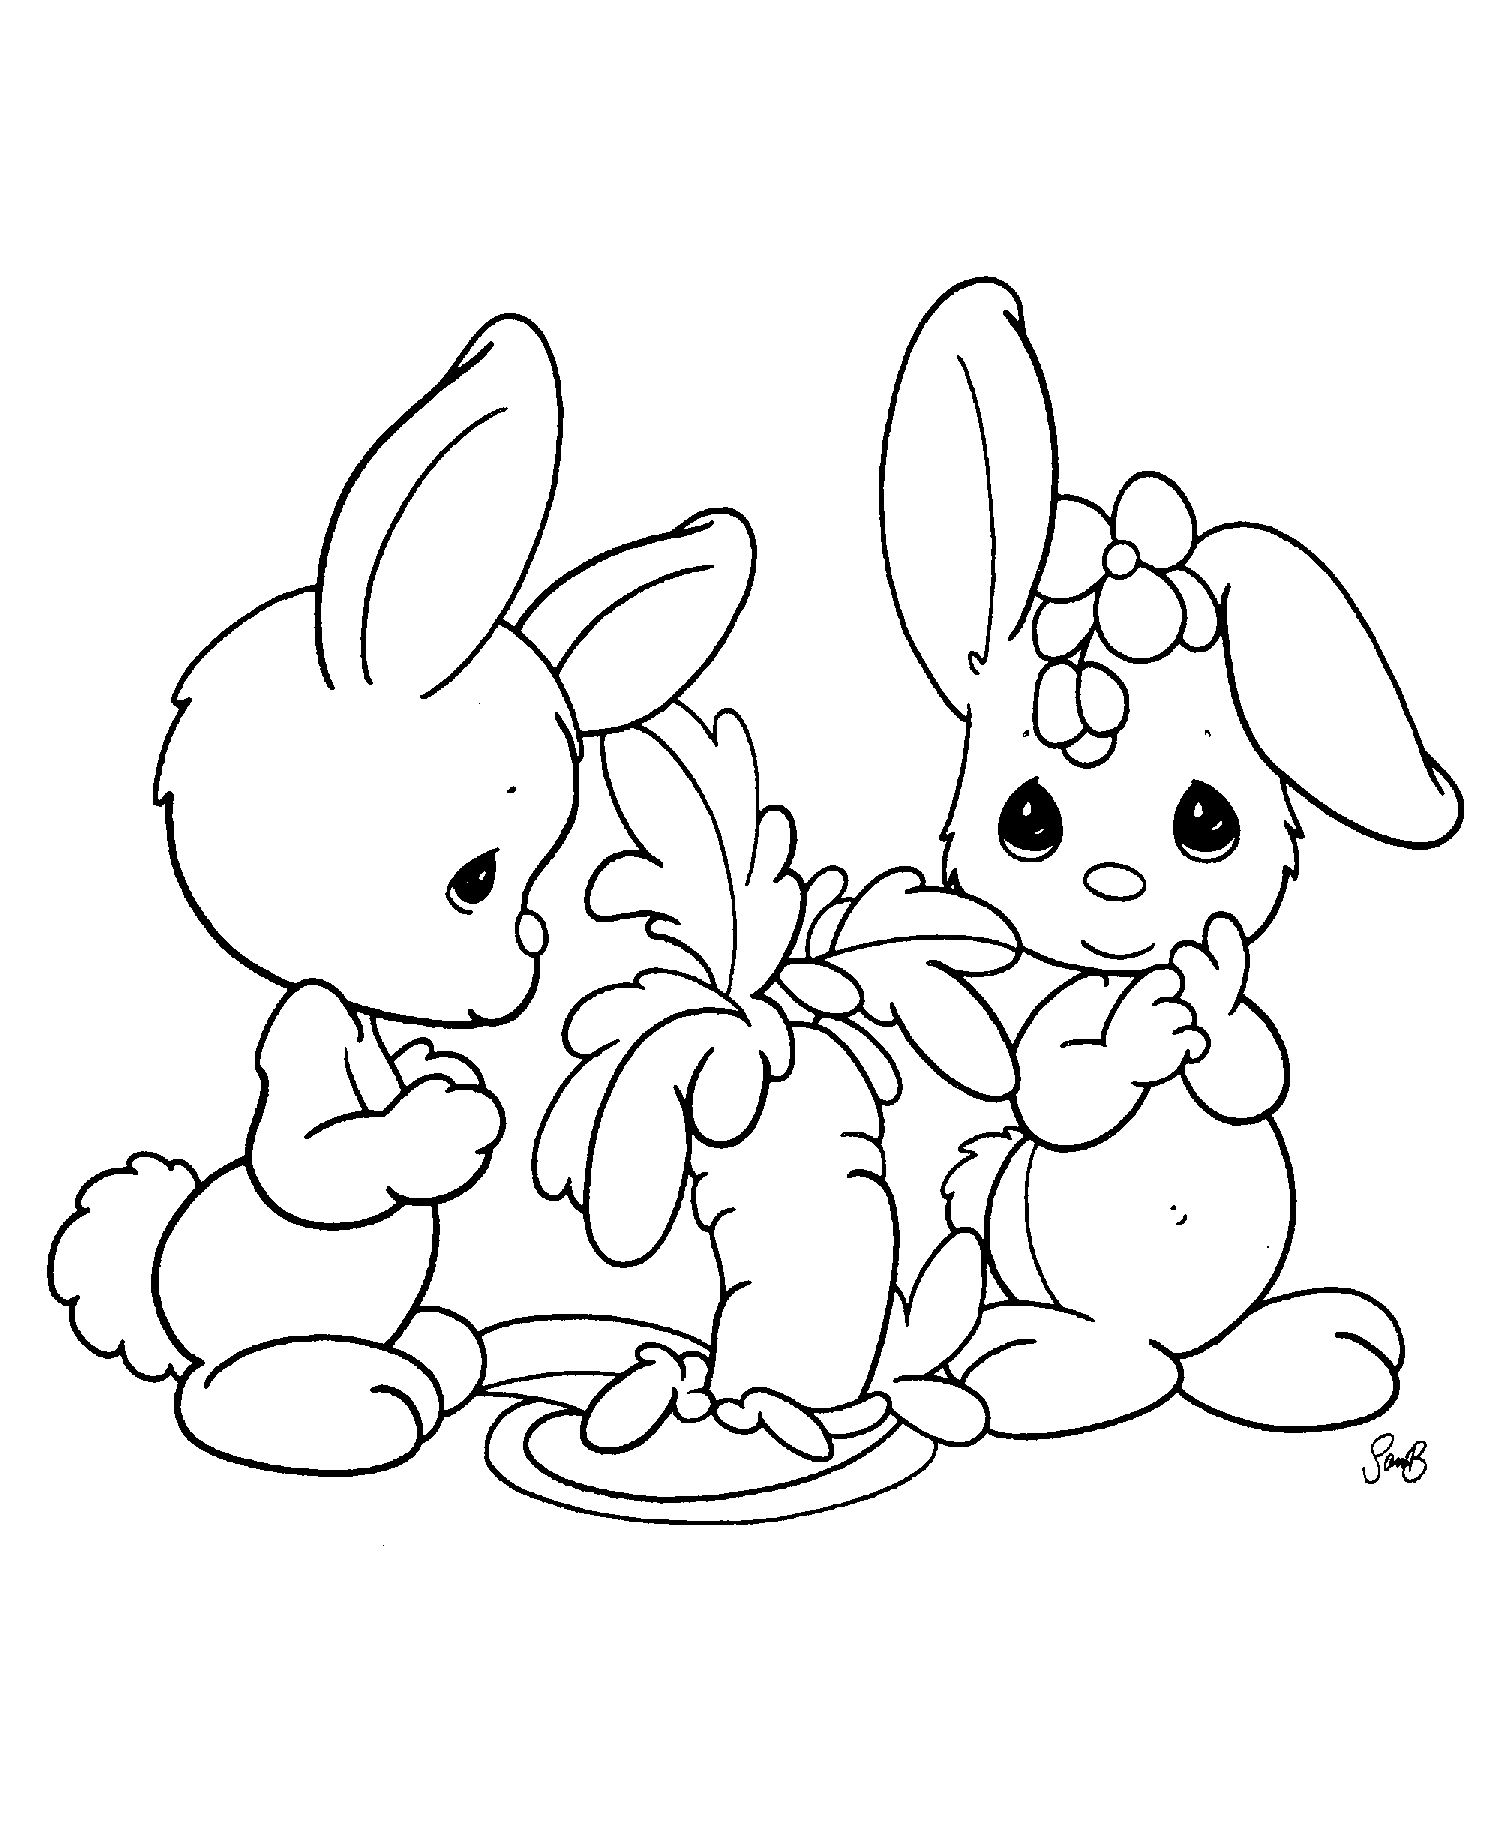 Baby bunny coloring pages coloring home for Baby rabbit coloring pages